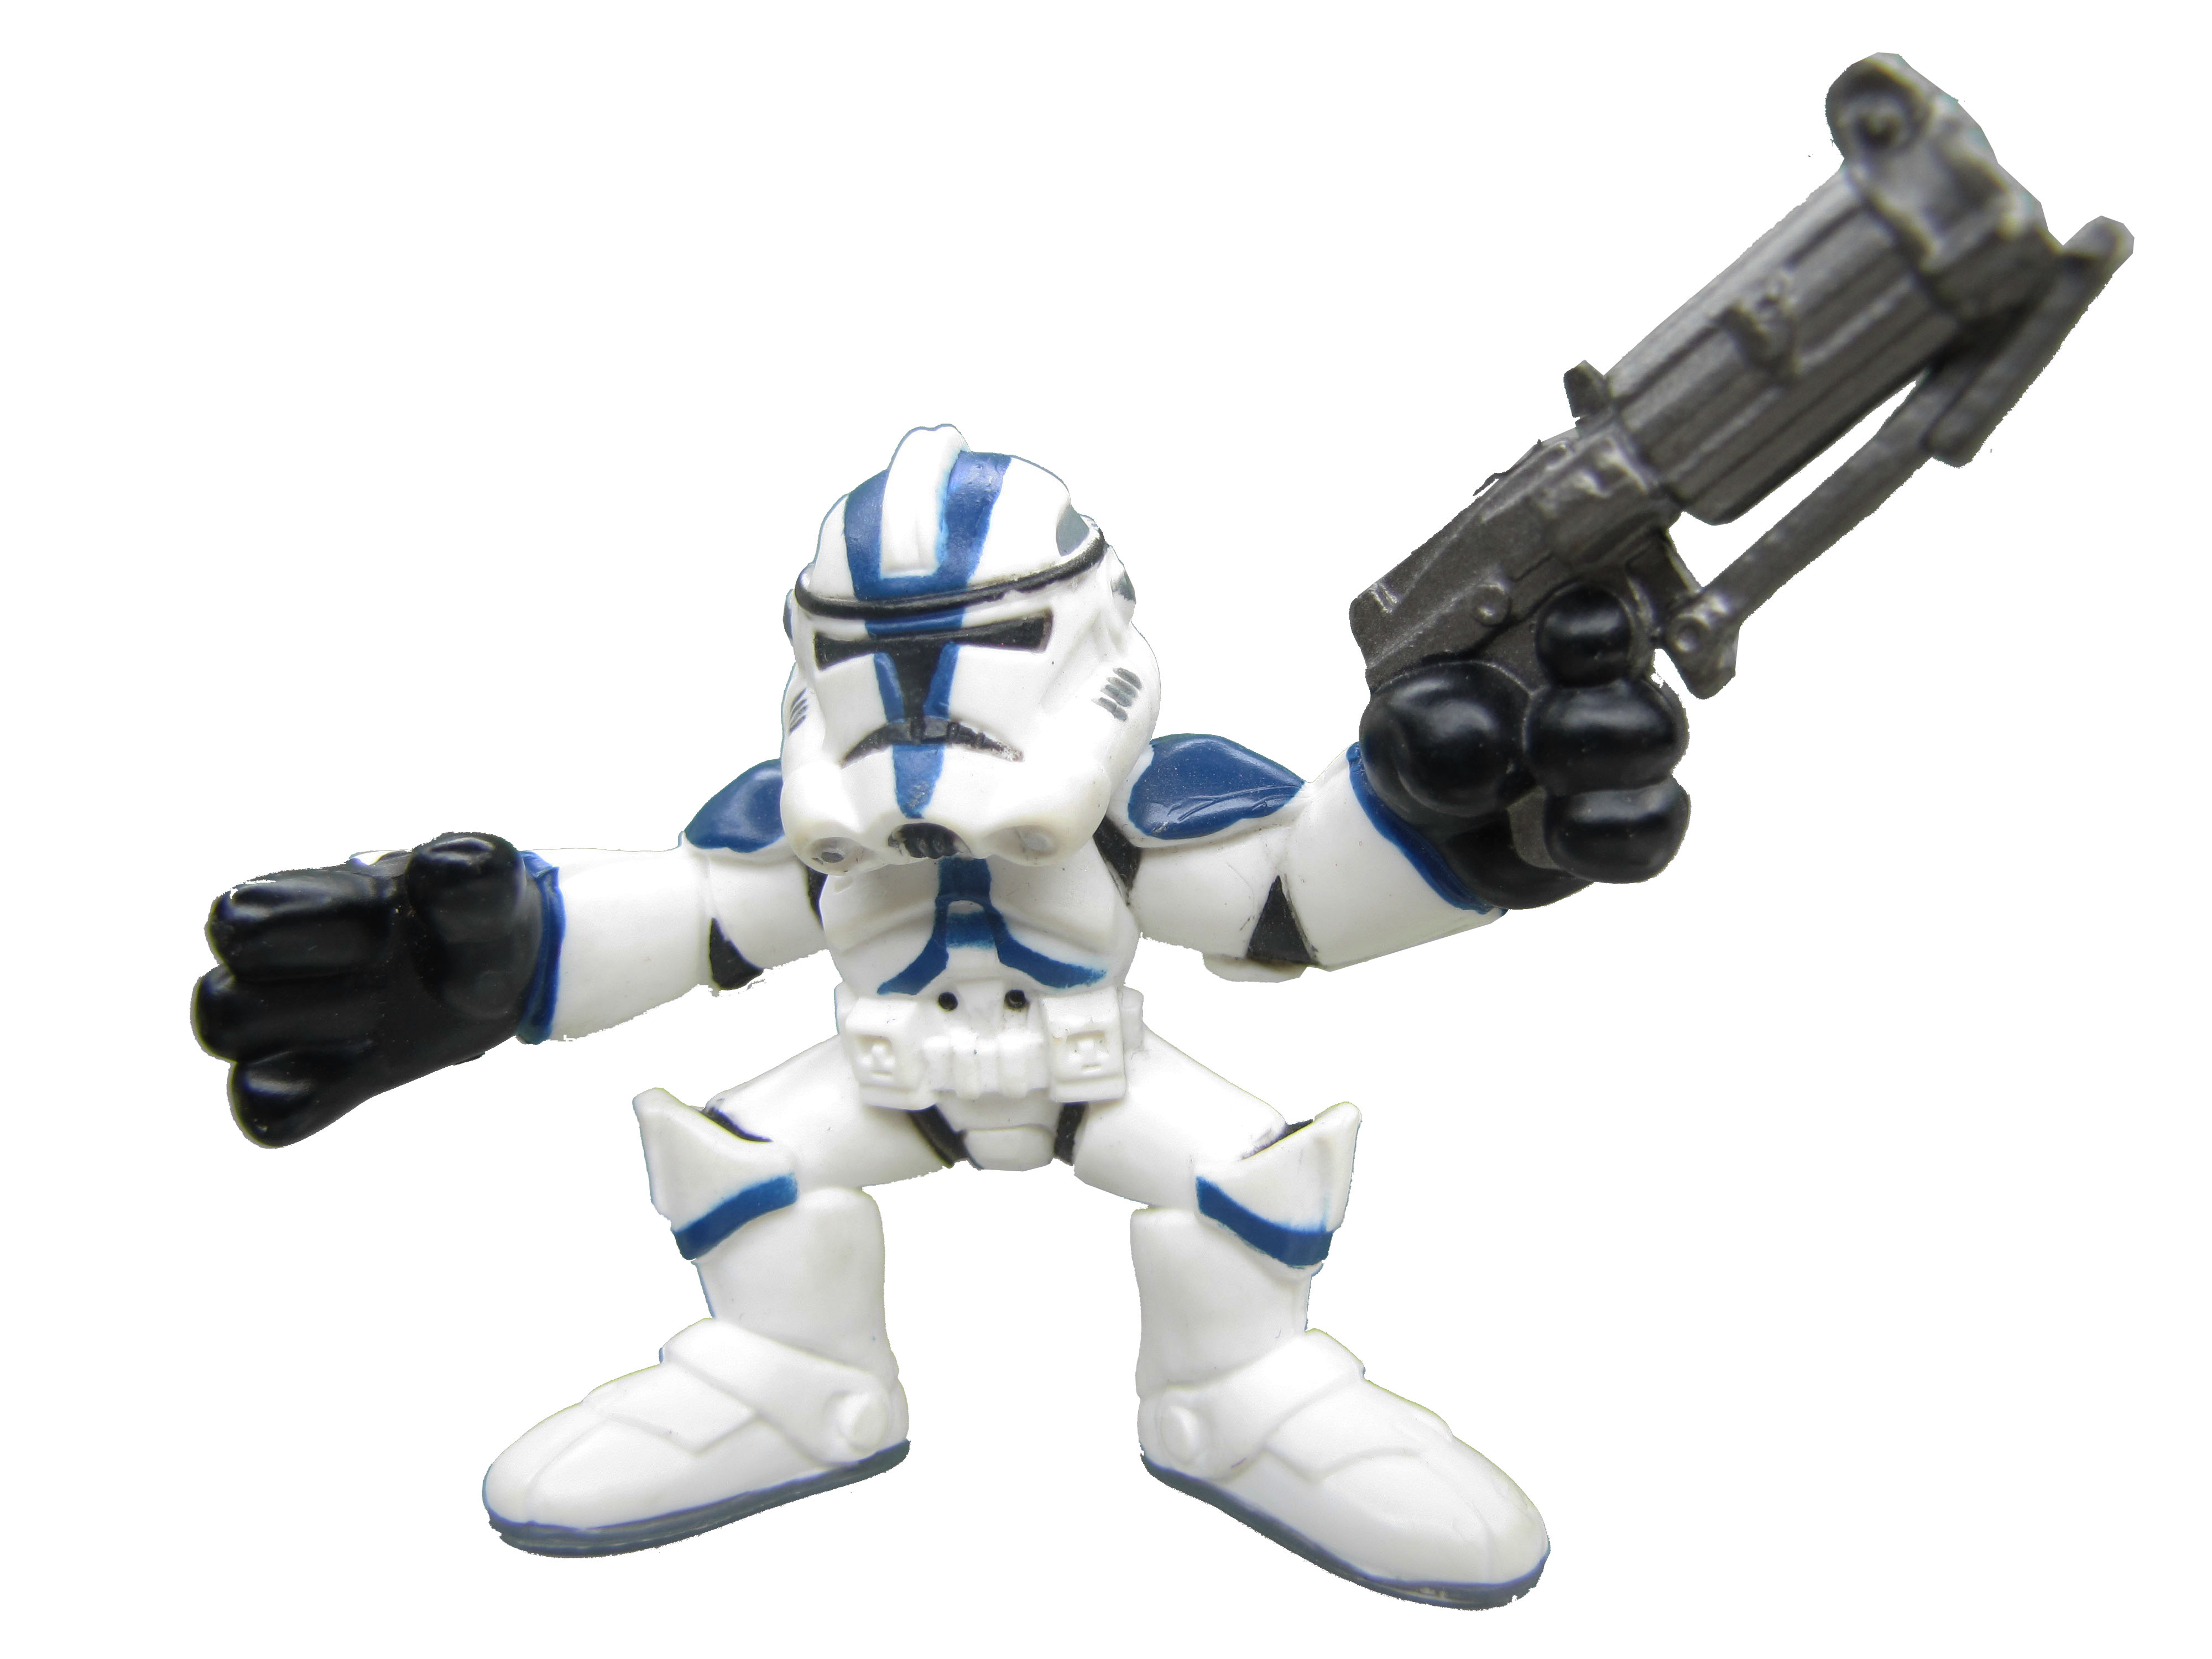 Star Wars Galactic Heroes 501st Legion Clone Trooper Complete My Generation Toys